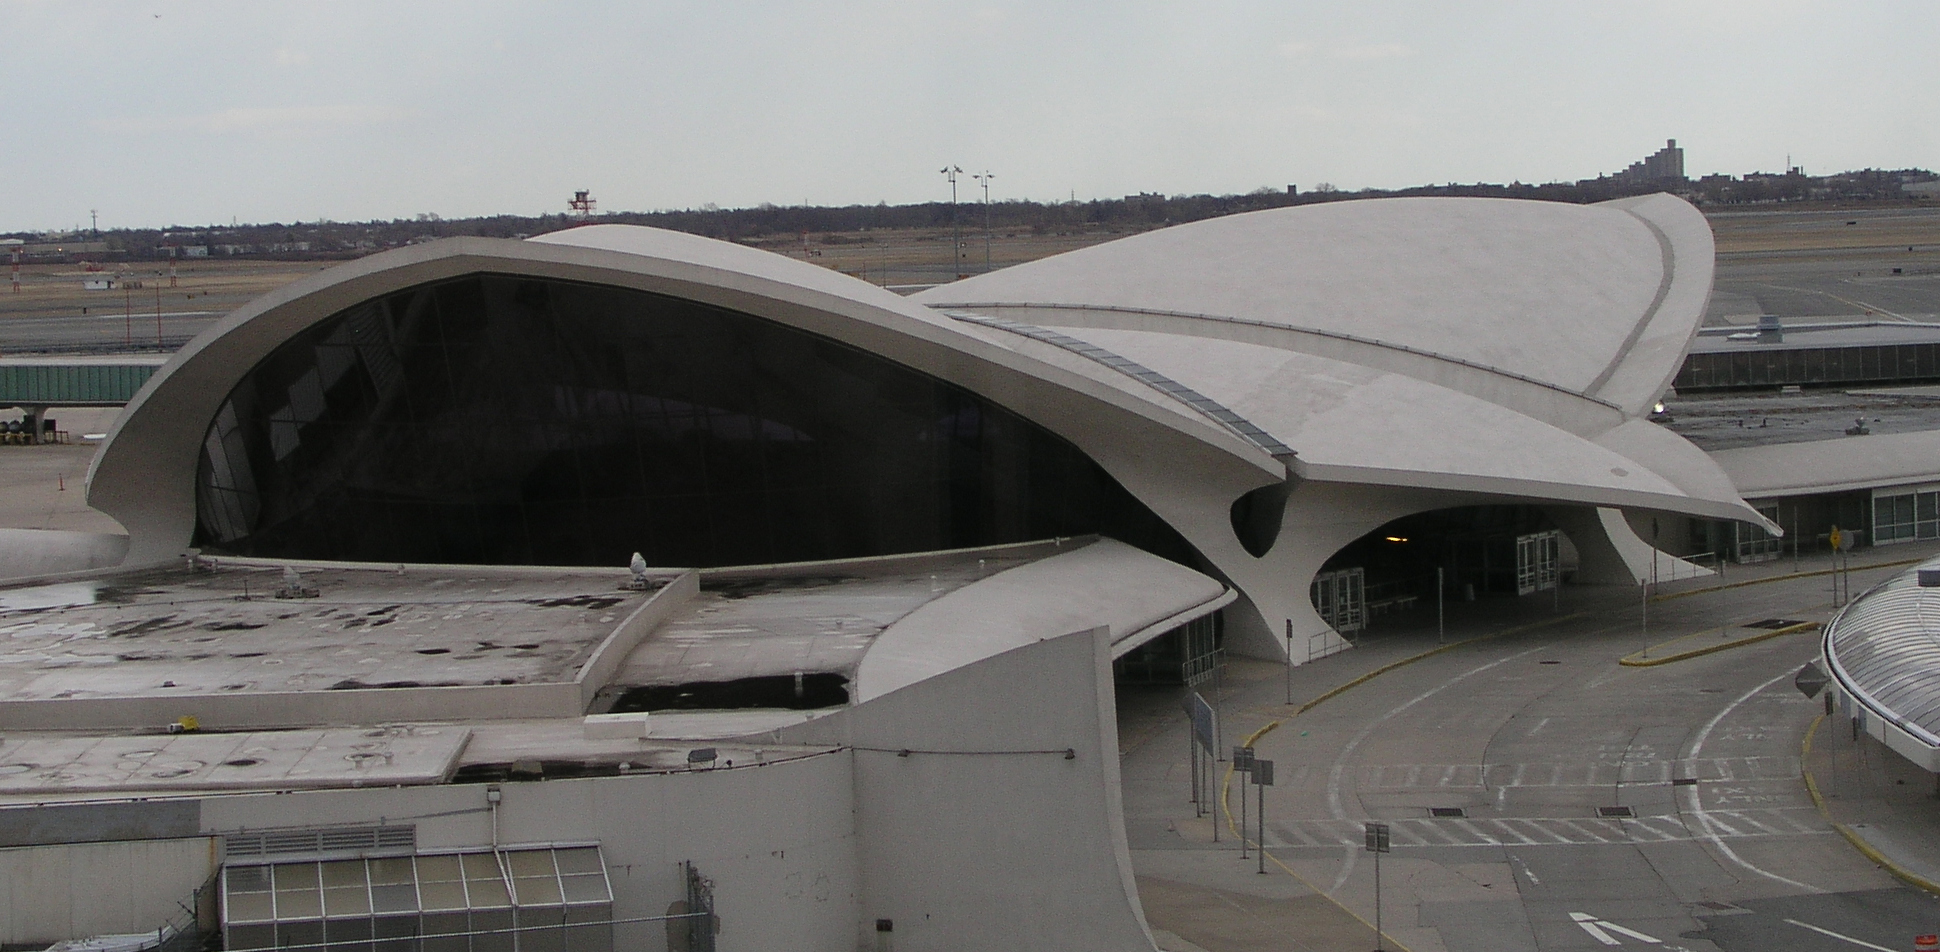 Shell Roof Designing Buildings Wiki